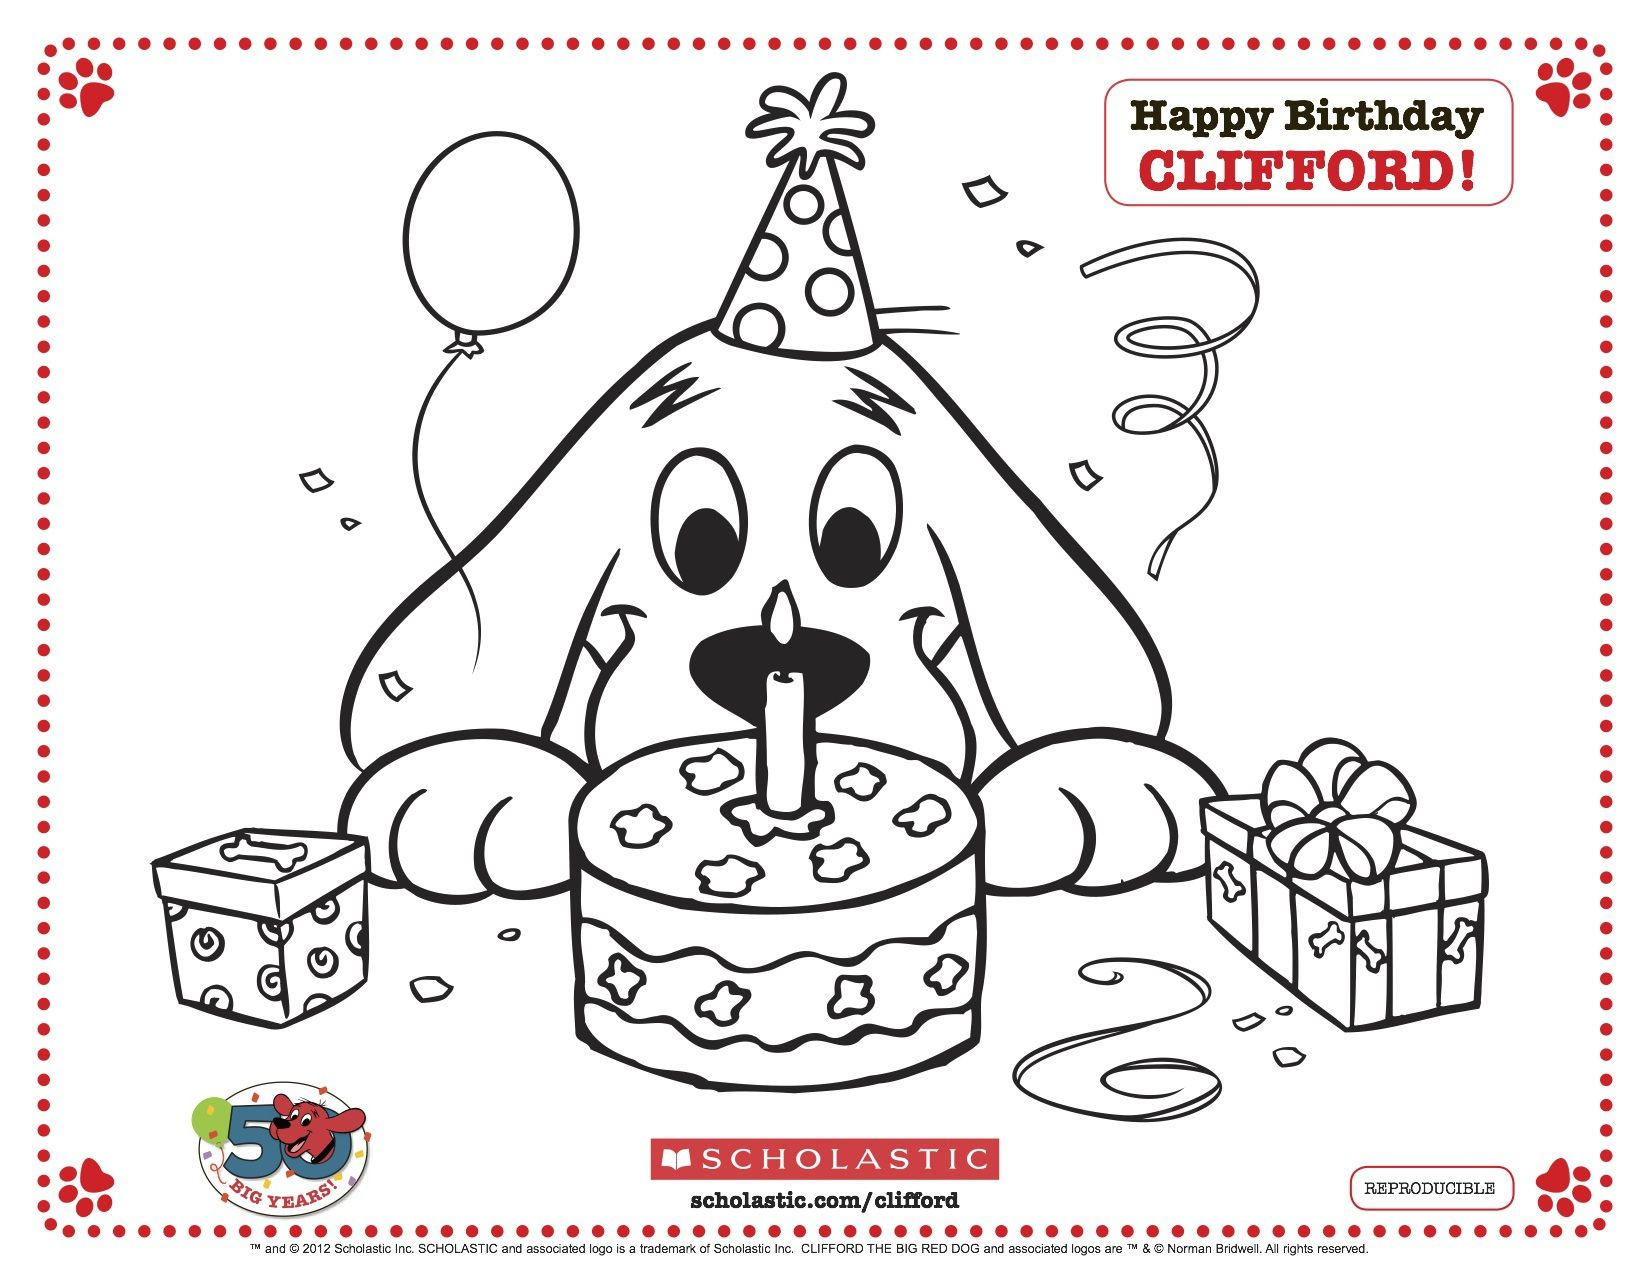 happy 6th birthday printable coloring pages like these coloring pages birthday rabbit surprise - Clifford Printable Coloring Pages